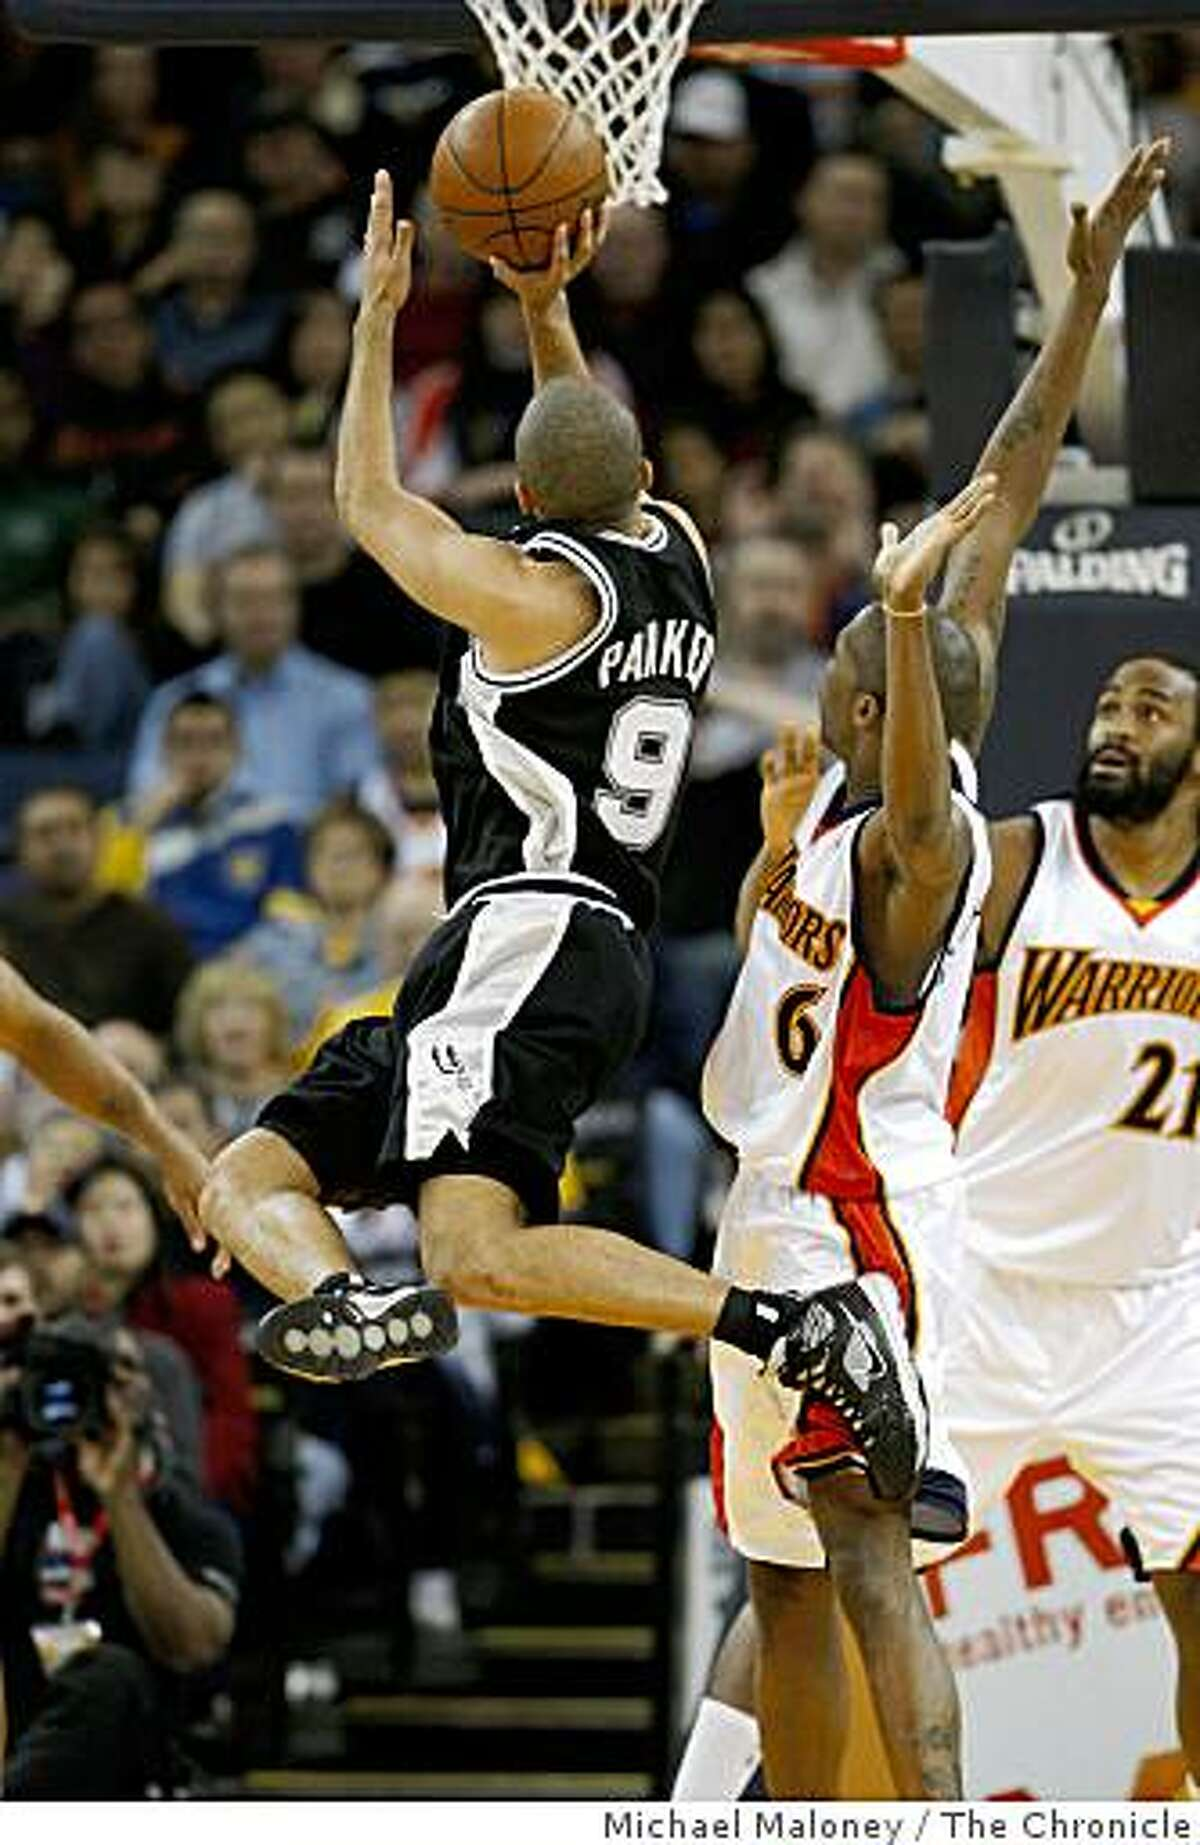 San Antonio Spurs Tony Parker (9) goes up for a shot against Golden State Warriors Jamal Crawford (6) and Ronny Turiaf (21) during a NBA game at Oracle Arena in Oakland, Calif., on Monday, February 2, 2009.